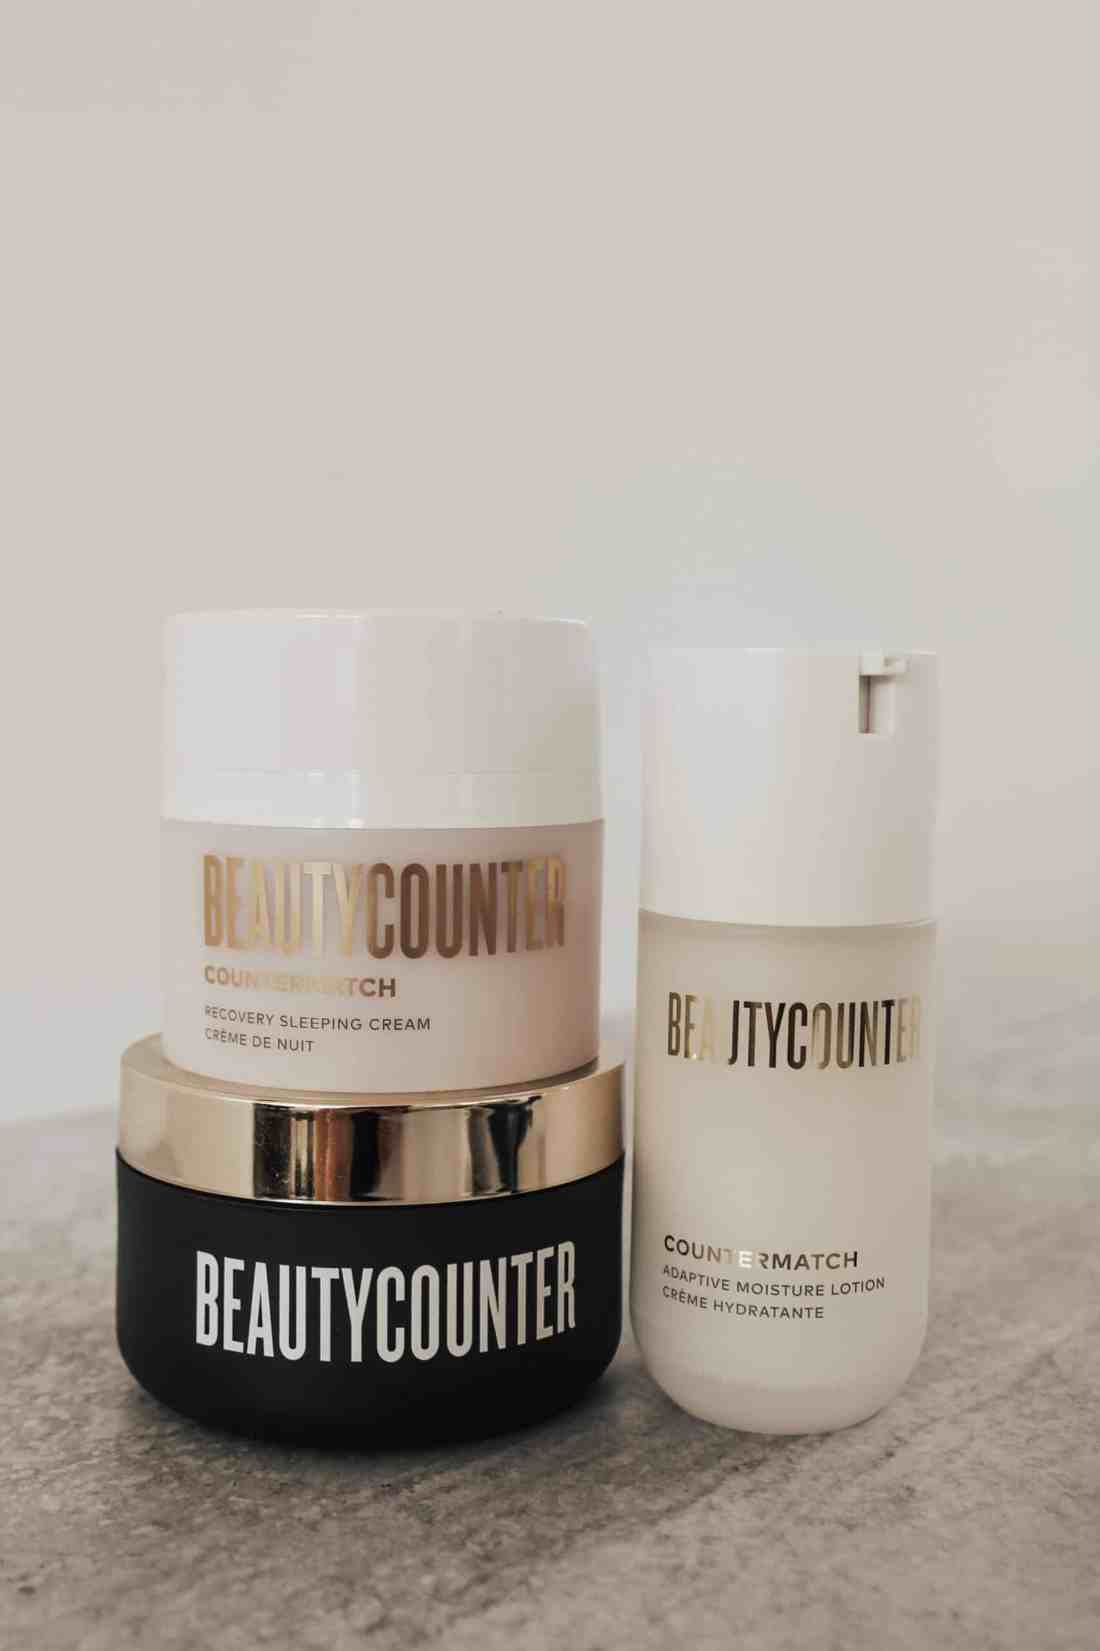 Sharing 7 clean, Beautycounter products to help combat mask acne or 'maskne', which will also help keep your pores clean, skin hydrated, & oil balanced!